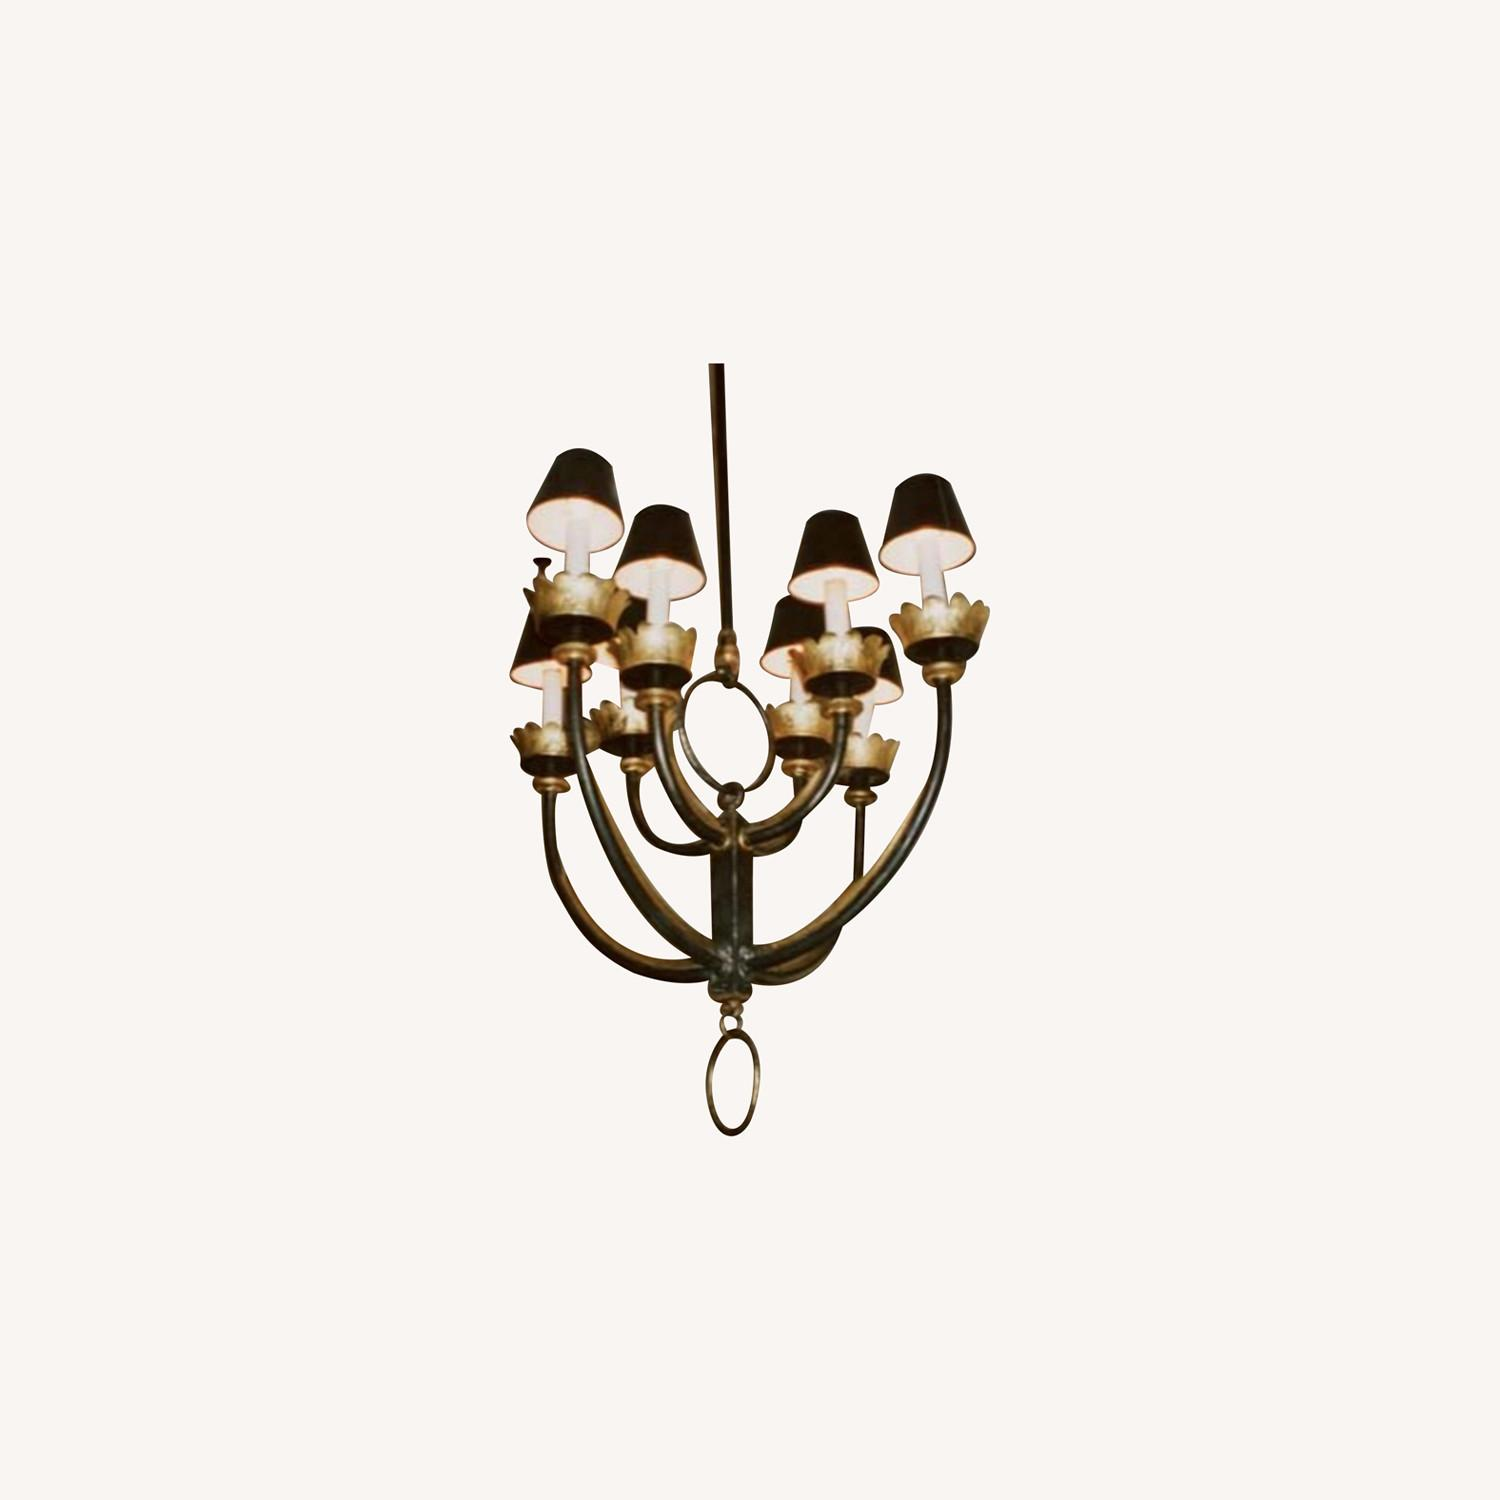 Mattaliano Hand Forged Wrought Iron Chandelier - image-3